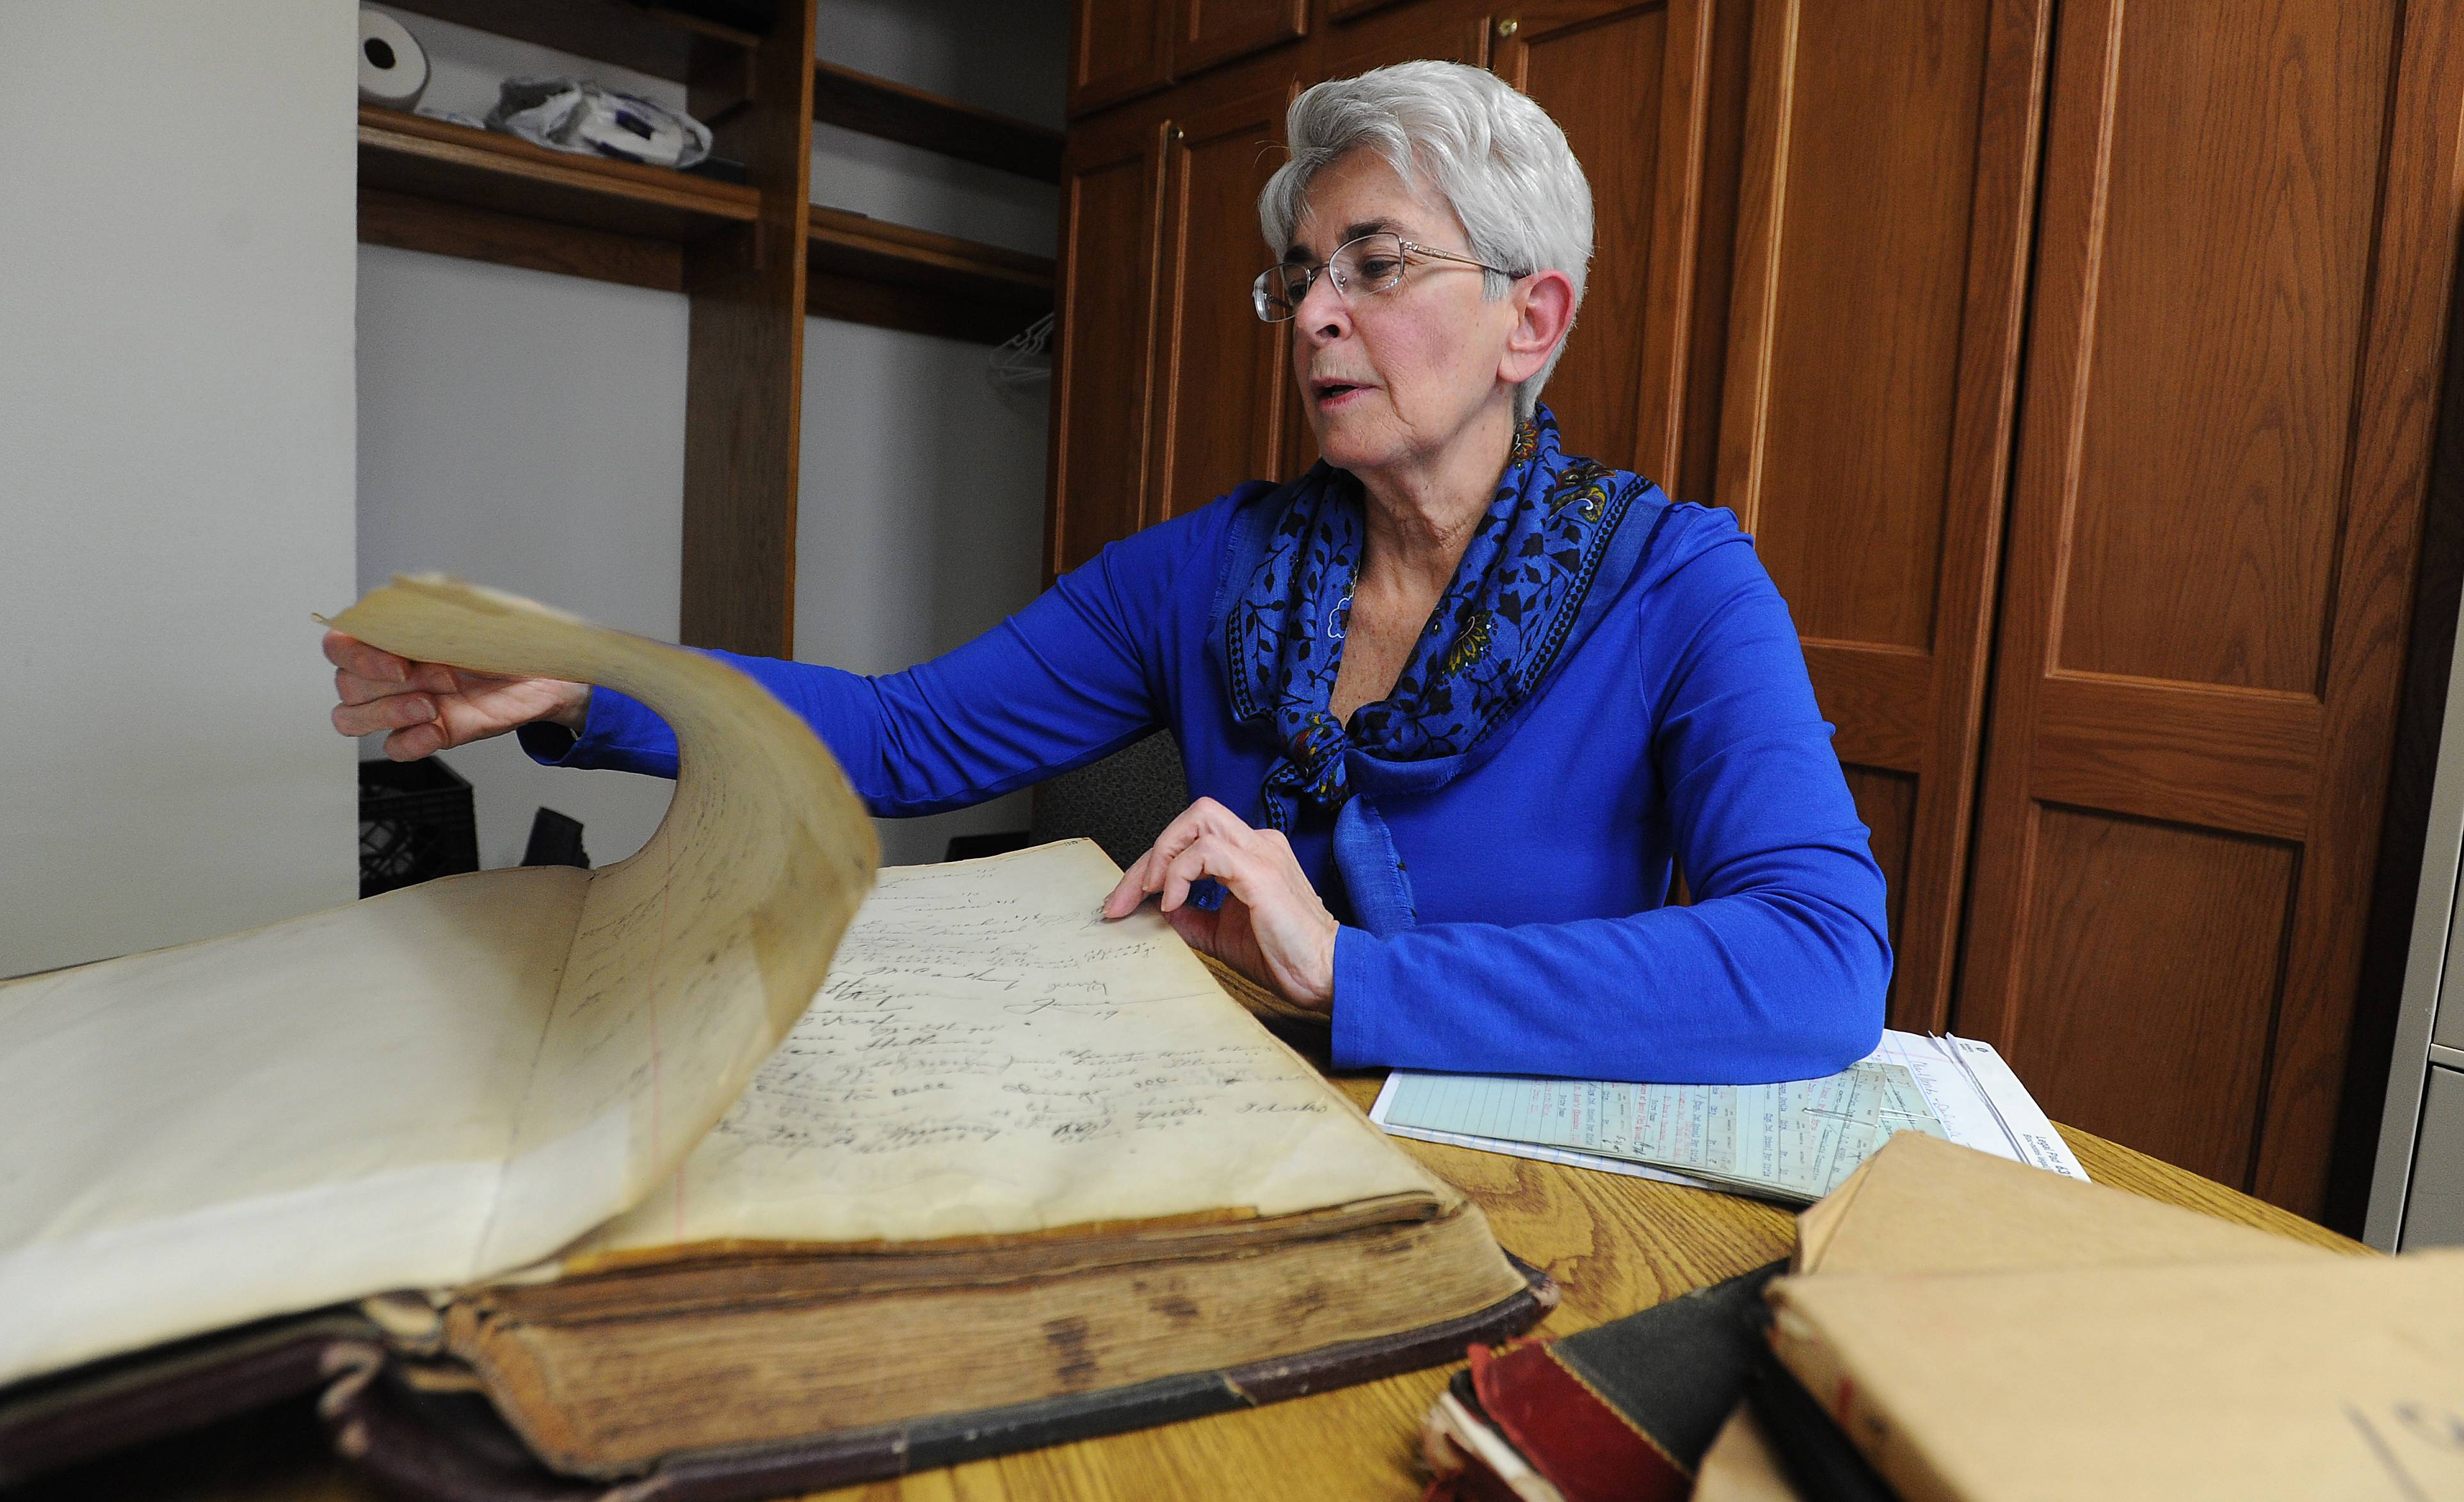 The penmanship is exquisite in these century-old record books discovered at Maryville Academy in Des Plaines. And there is a story behind every name, says compliance officer Mary Ellen D'Amato.